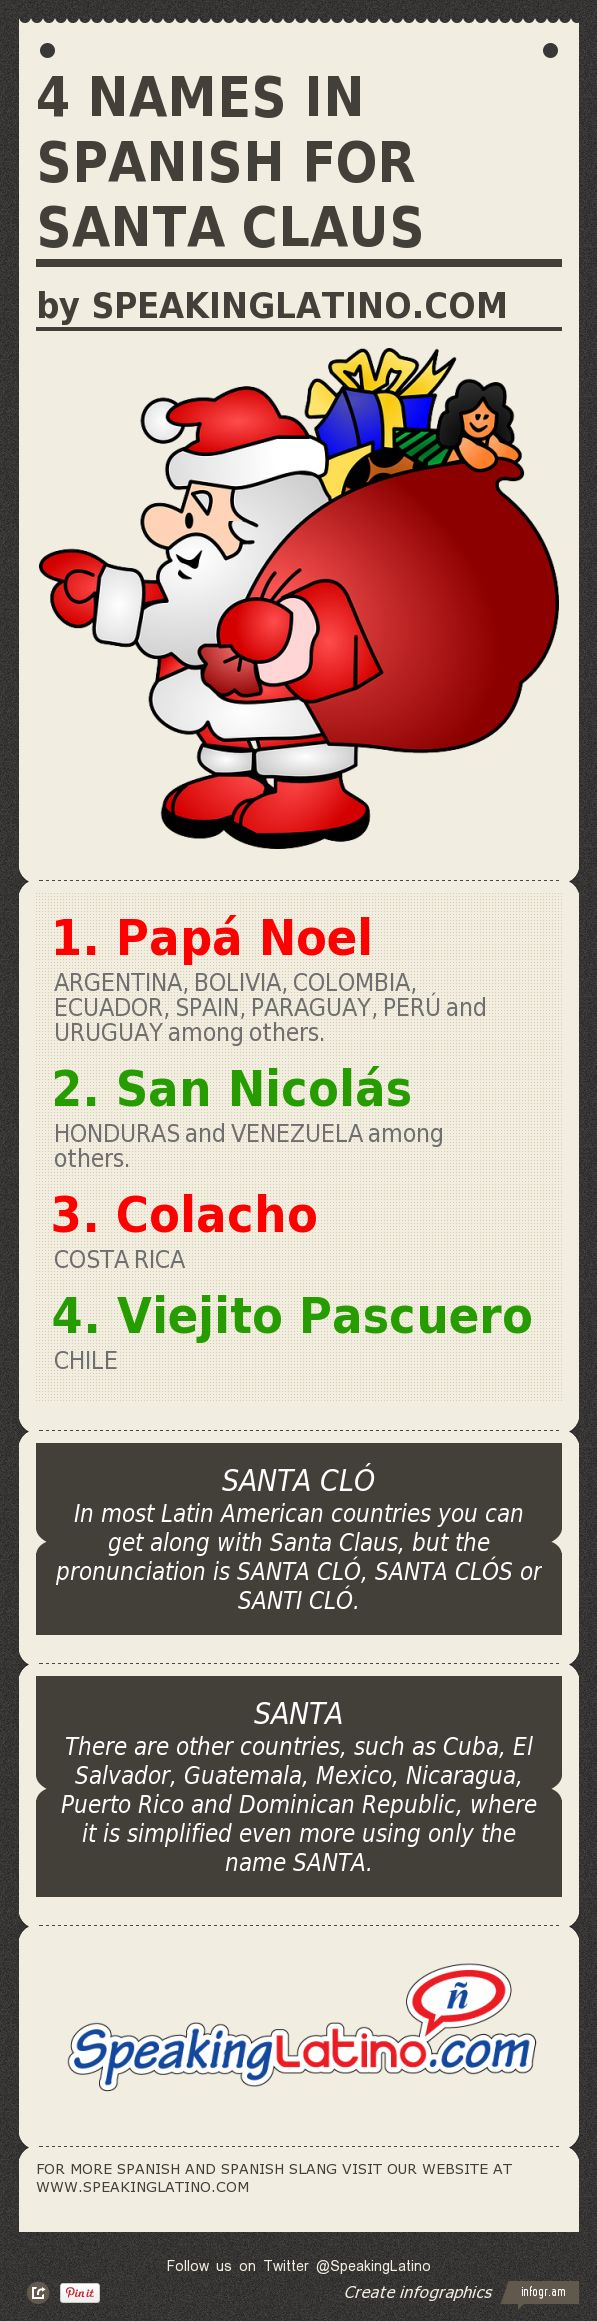 #Infographic 4 Names in Spanish for SANTA CLAUS #SantaClaus #Spanish #Christmas via http://www.speakinglatino.com/speaking-latino-whats-the-word-santa-claus/